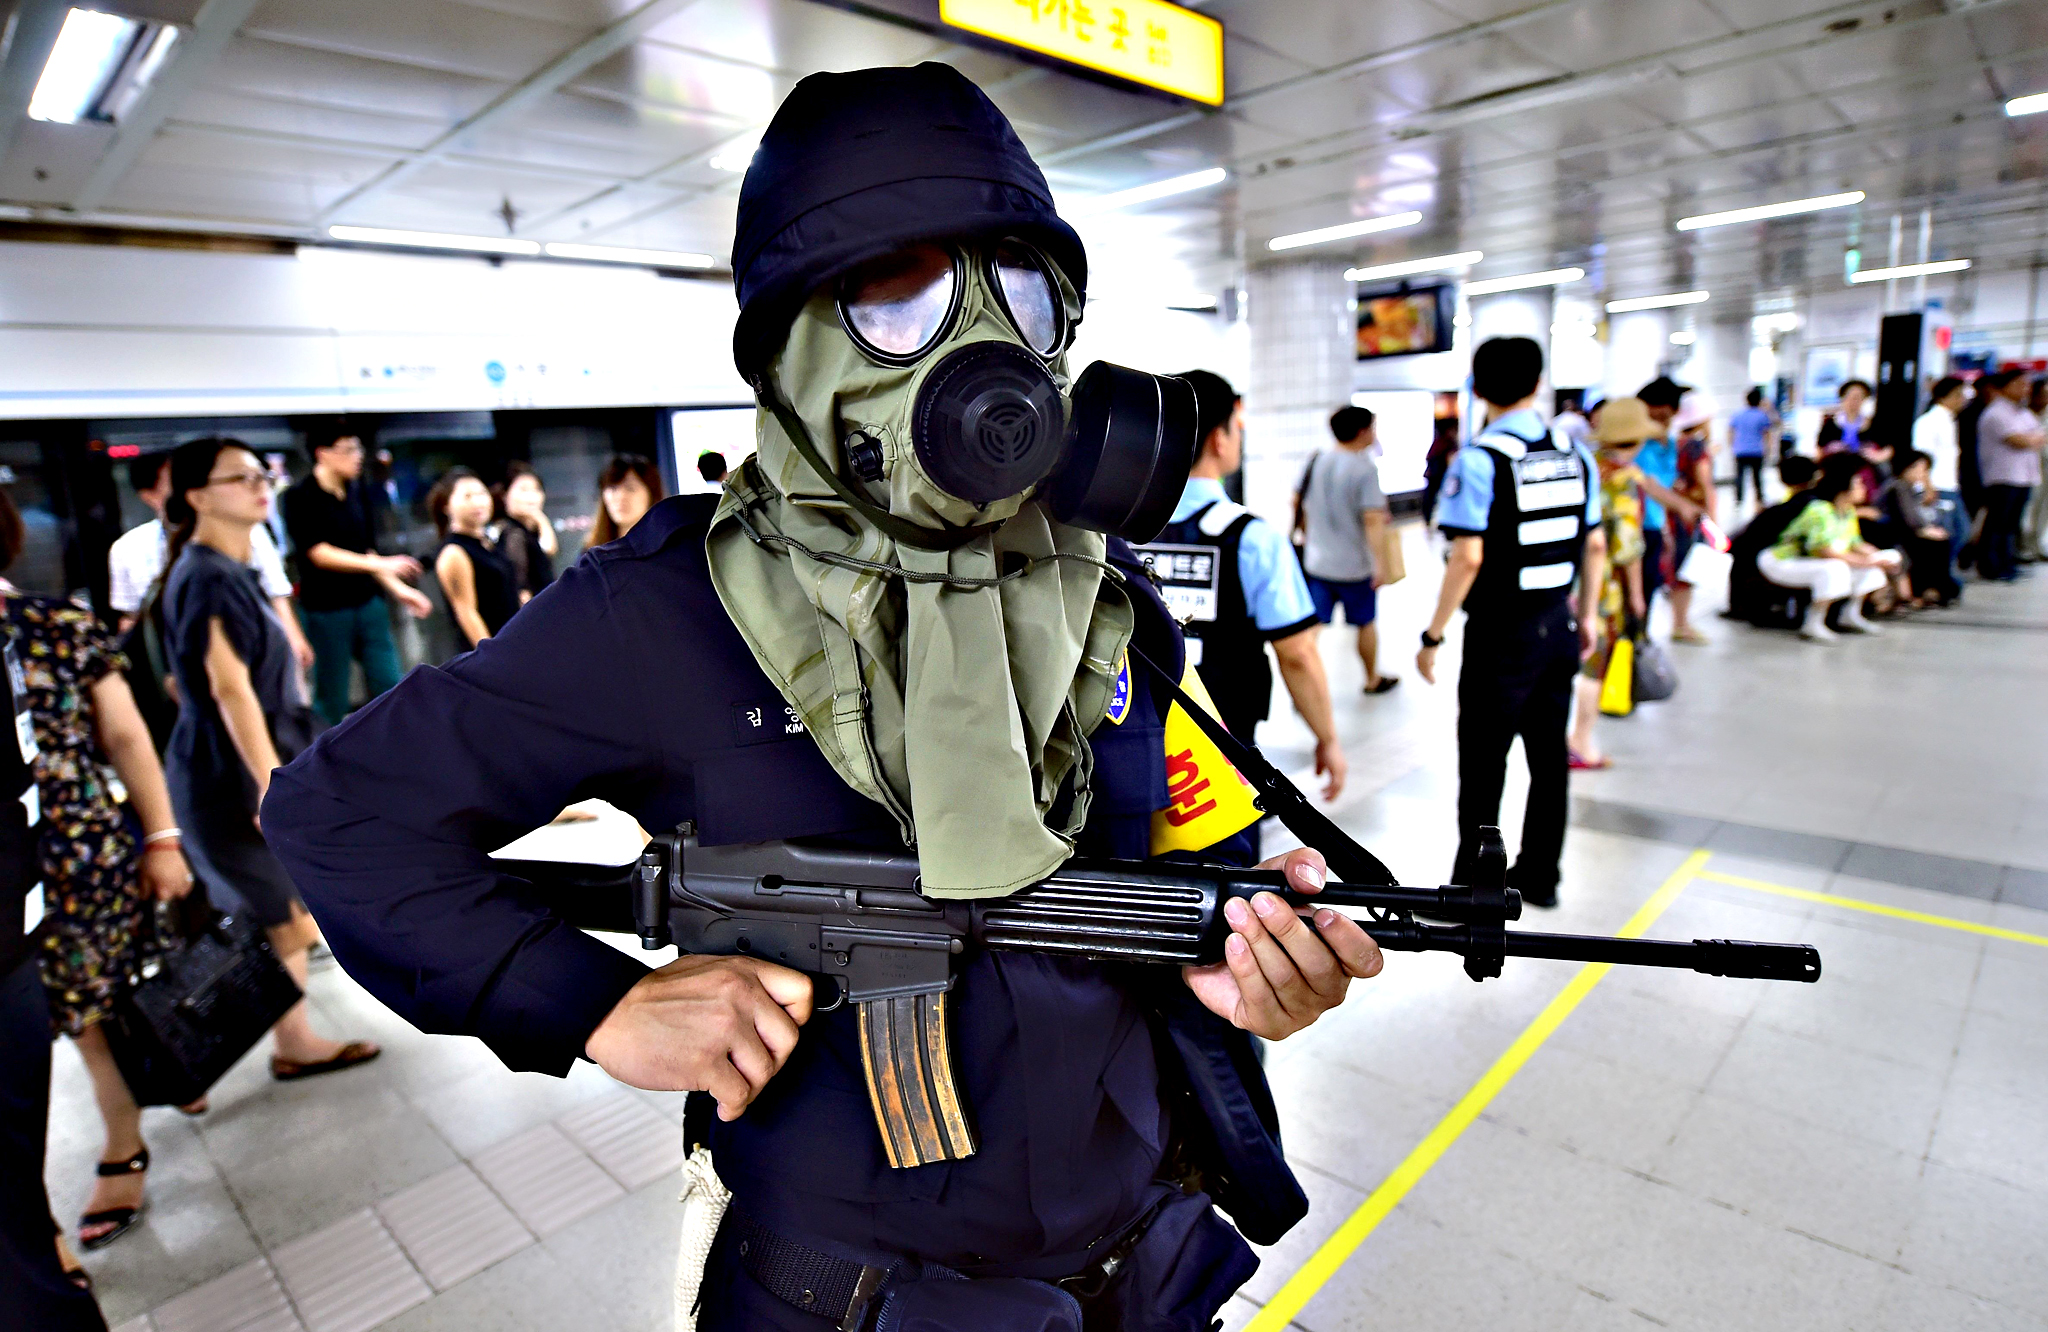 A South Korean armed policeman wears a gas mask during an anti-terror drill on the sidelines of South Korea-US joint military exercise, called Ulchi Freedom Guardian, at a subway station in Seoul on August 19, 2015. Tens of thousands of South Korean and US troops on August 17 began a military exercise simulating an all-out North Korean attack, as Pyongyang matched Seoul in resuming a loudspeaker propaganda campaign across their heavily-fortified border